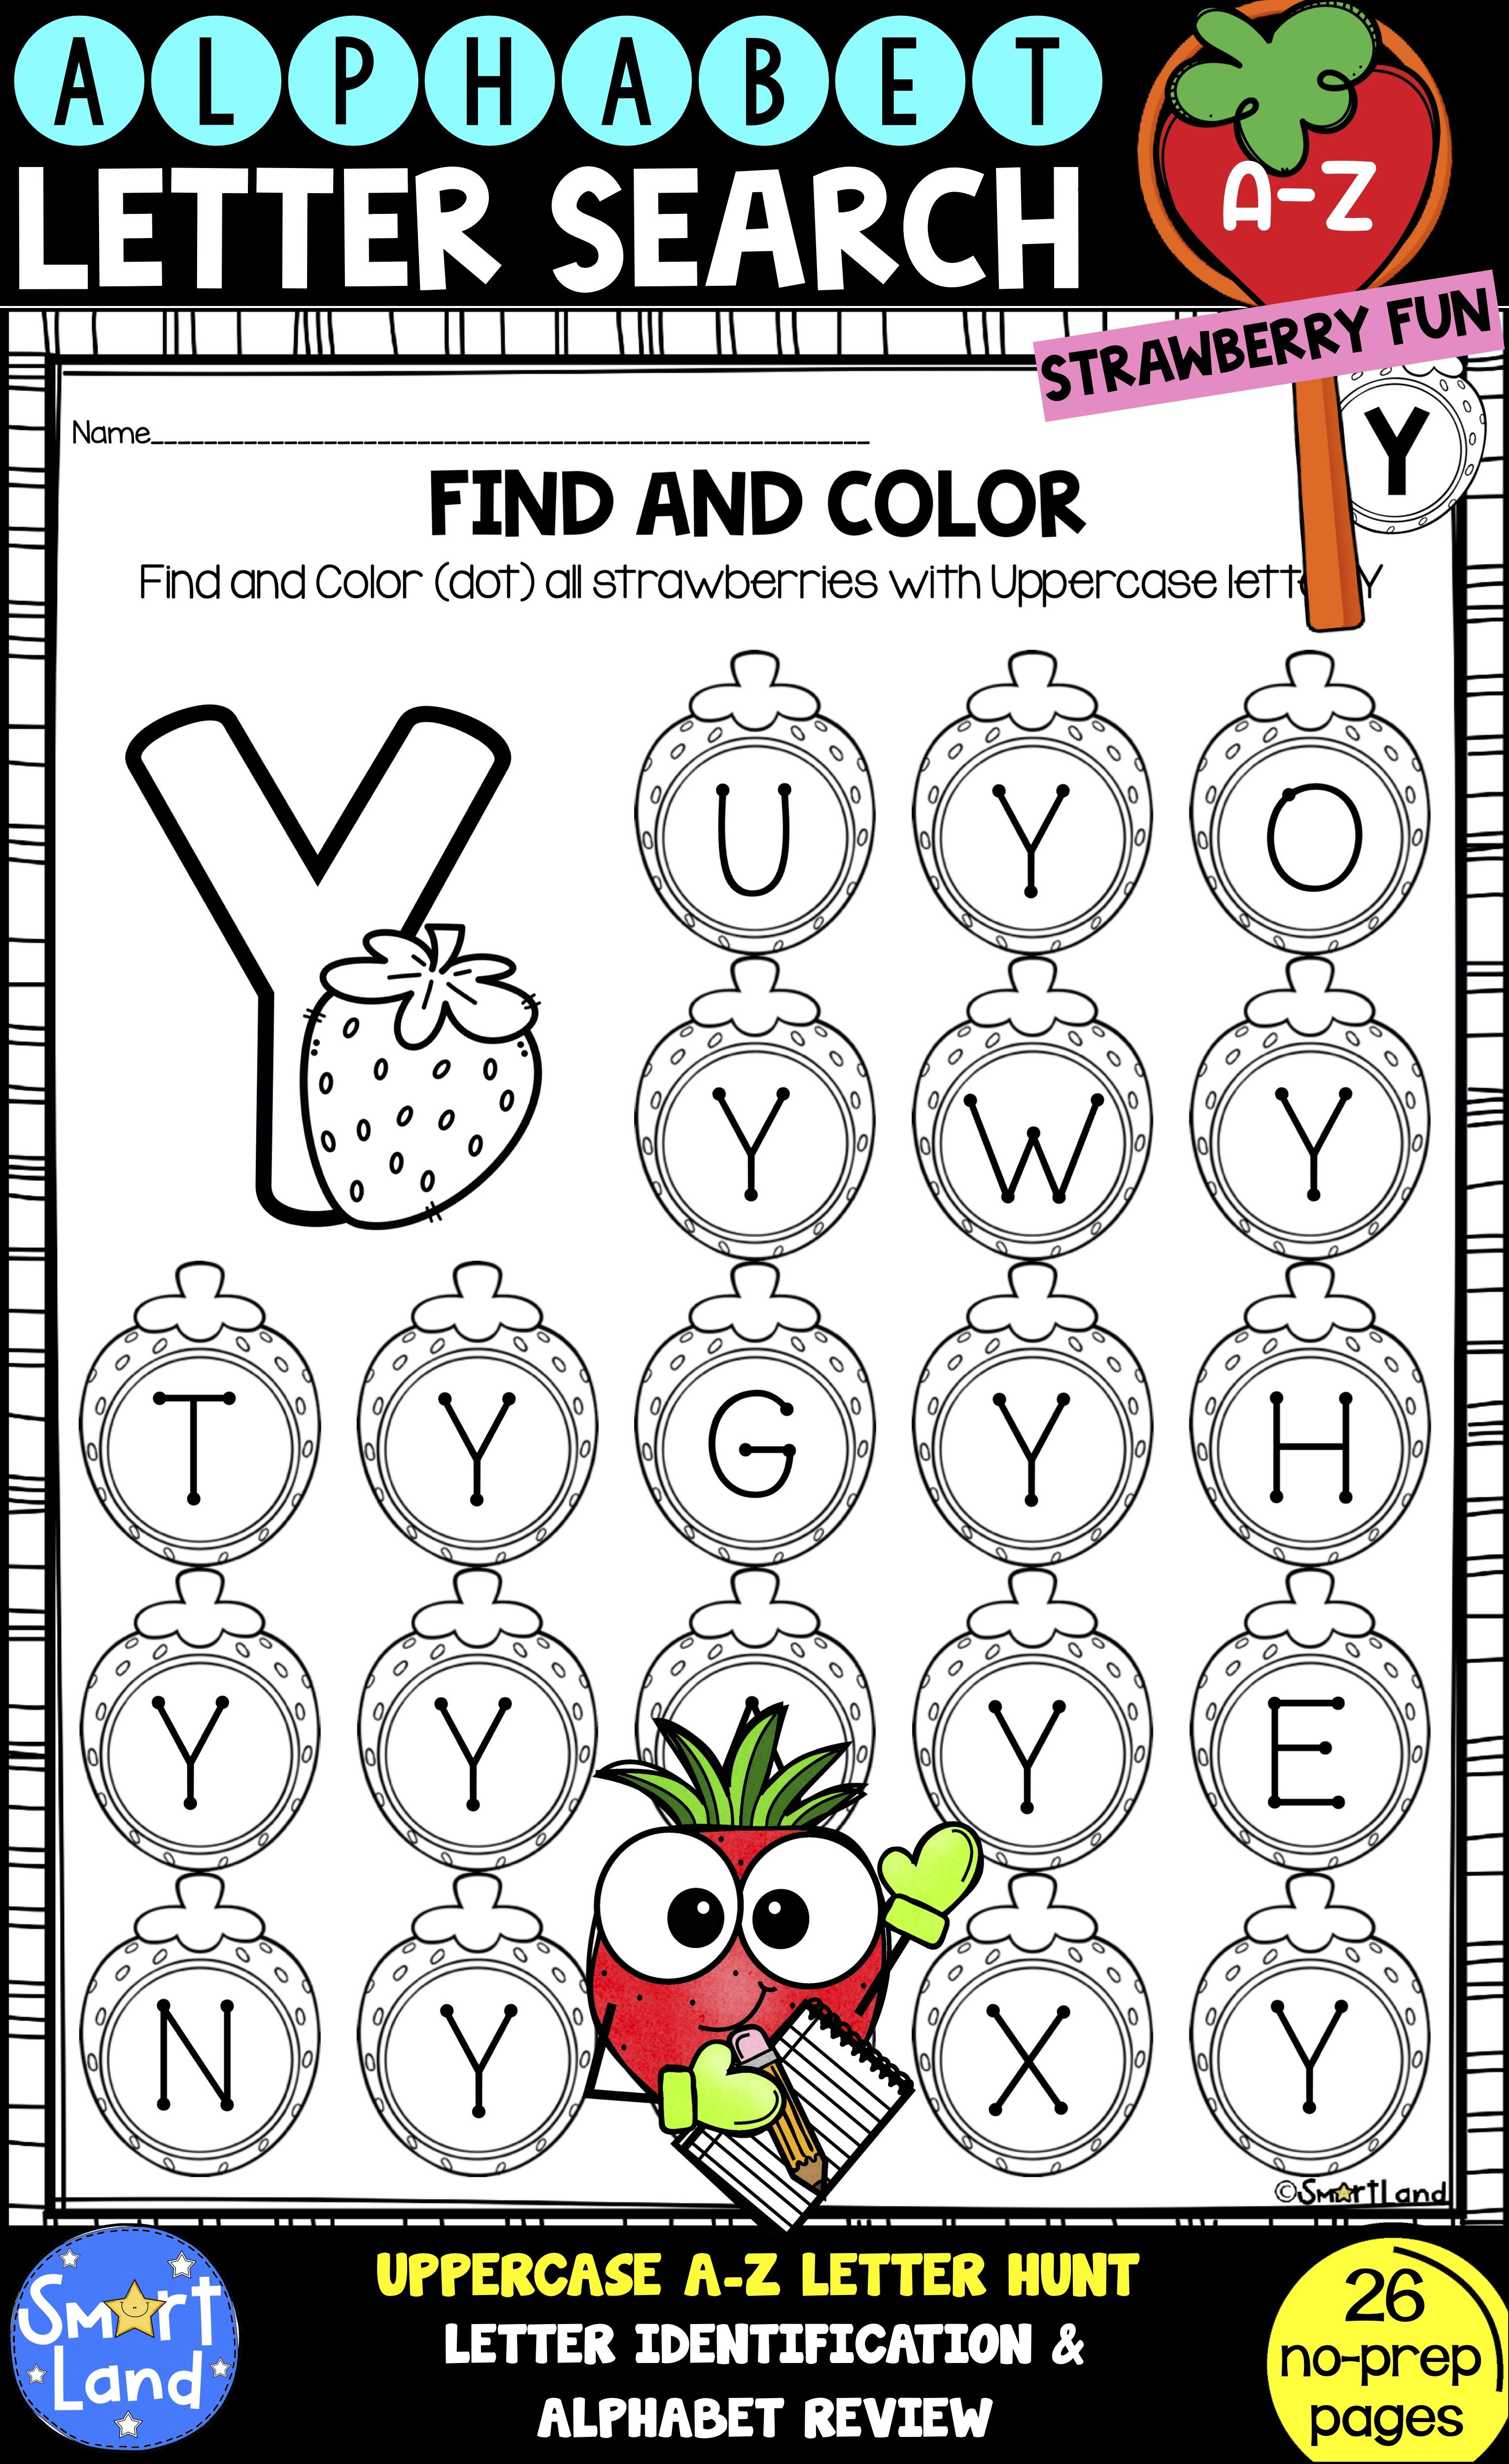 Alphabet Practice Letter Search Strawberry Fun In